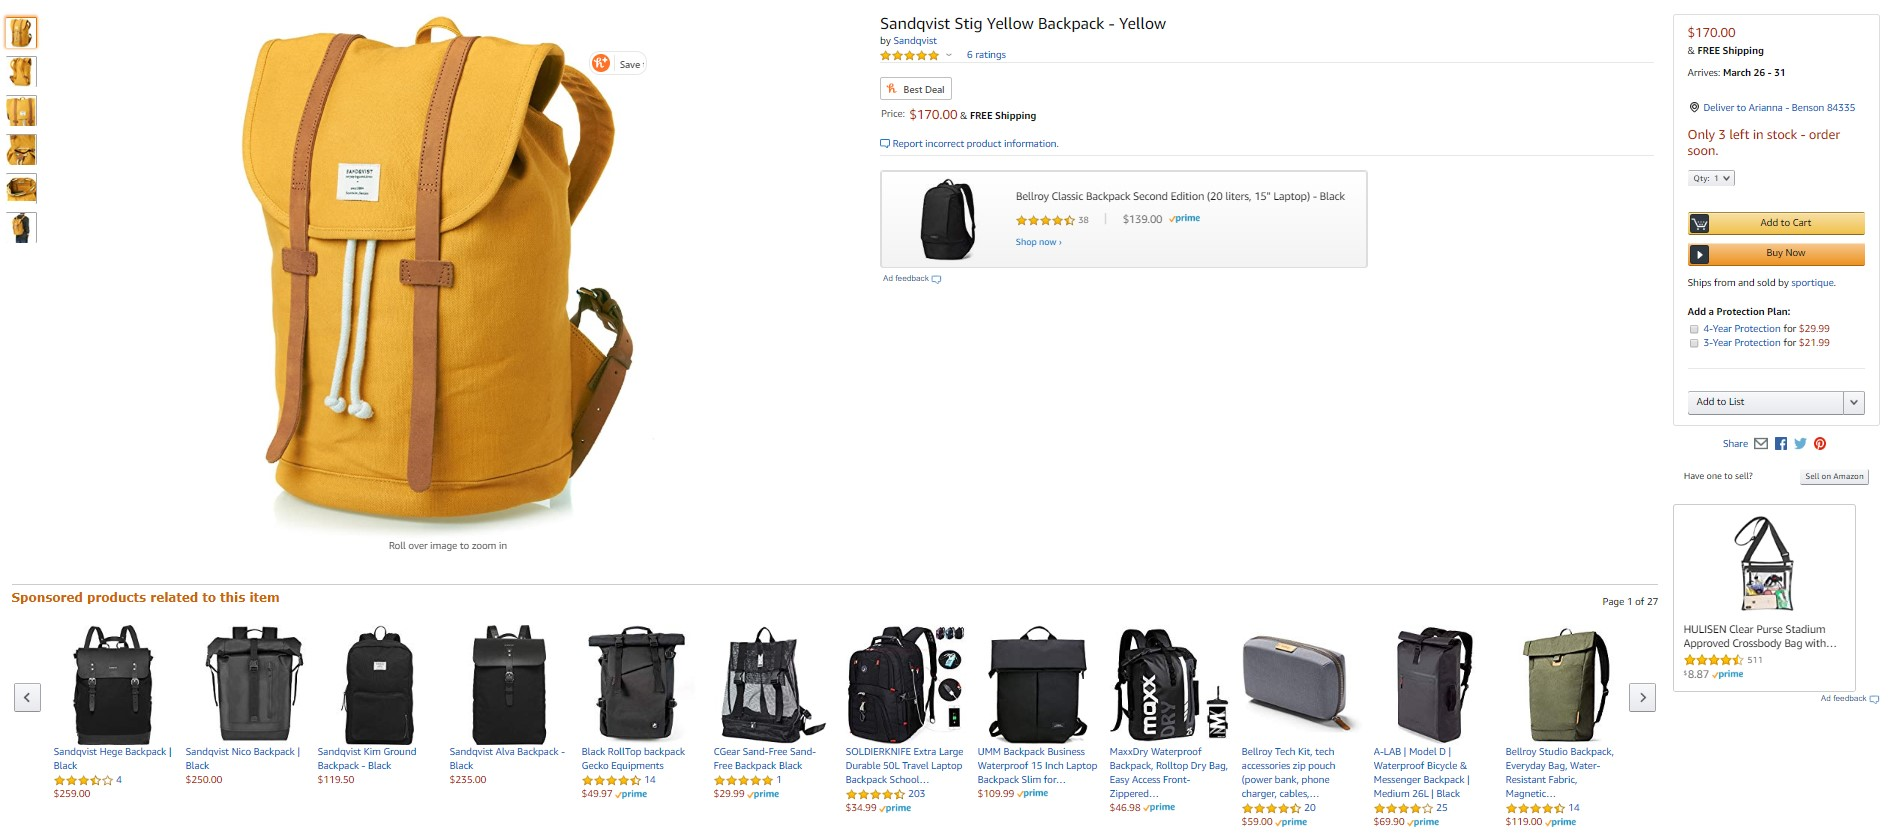 sponsored products on Amazon strategy